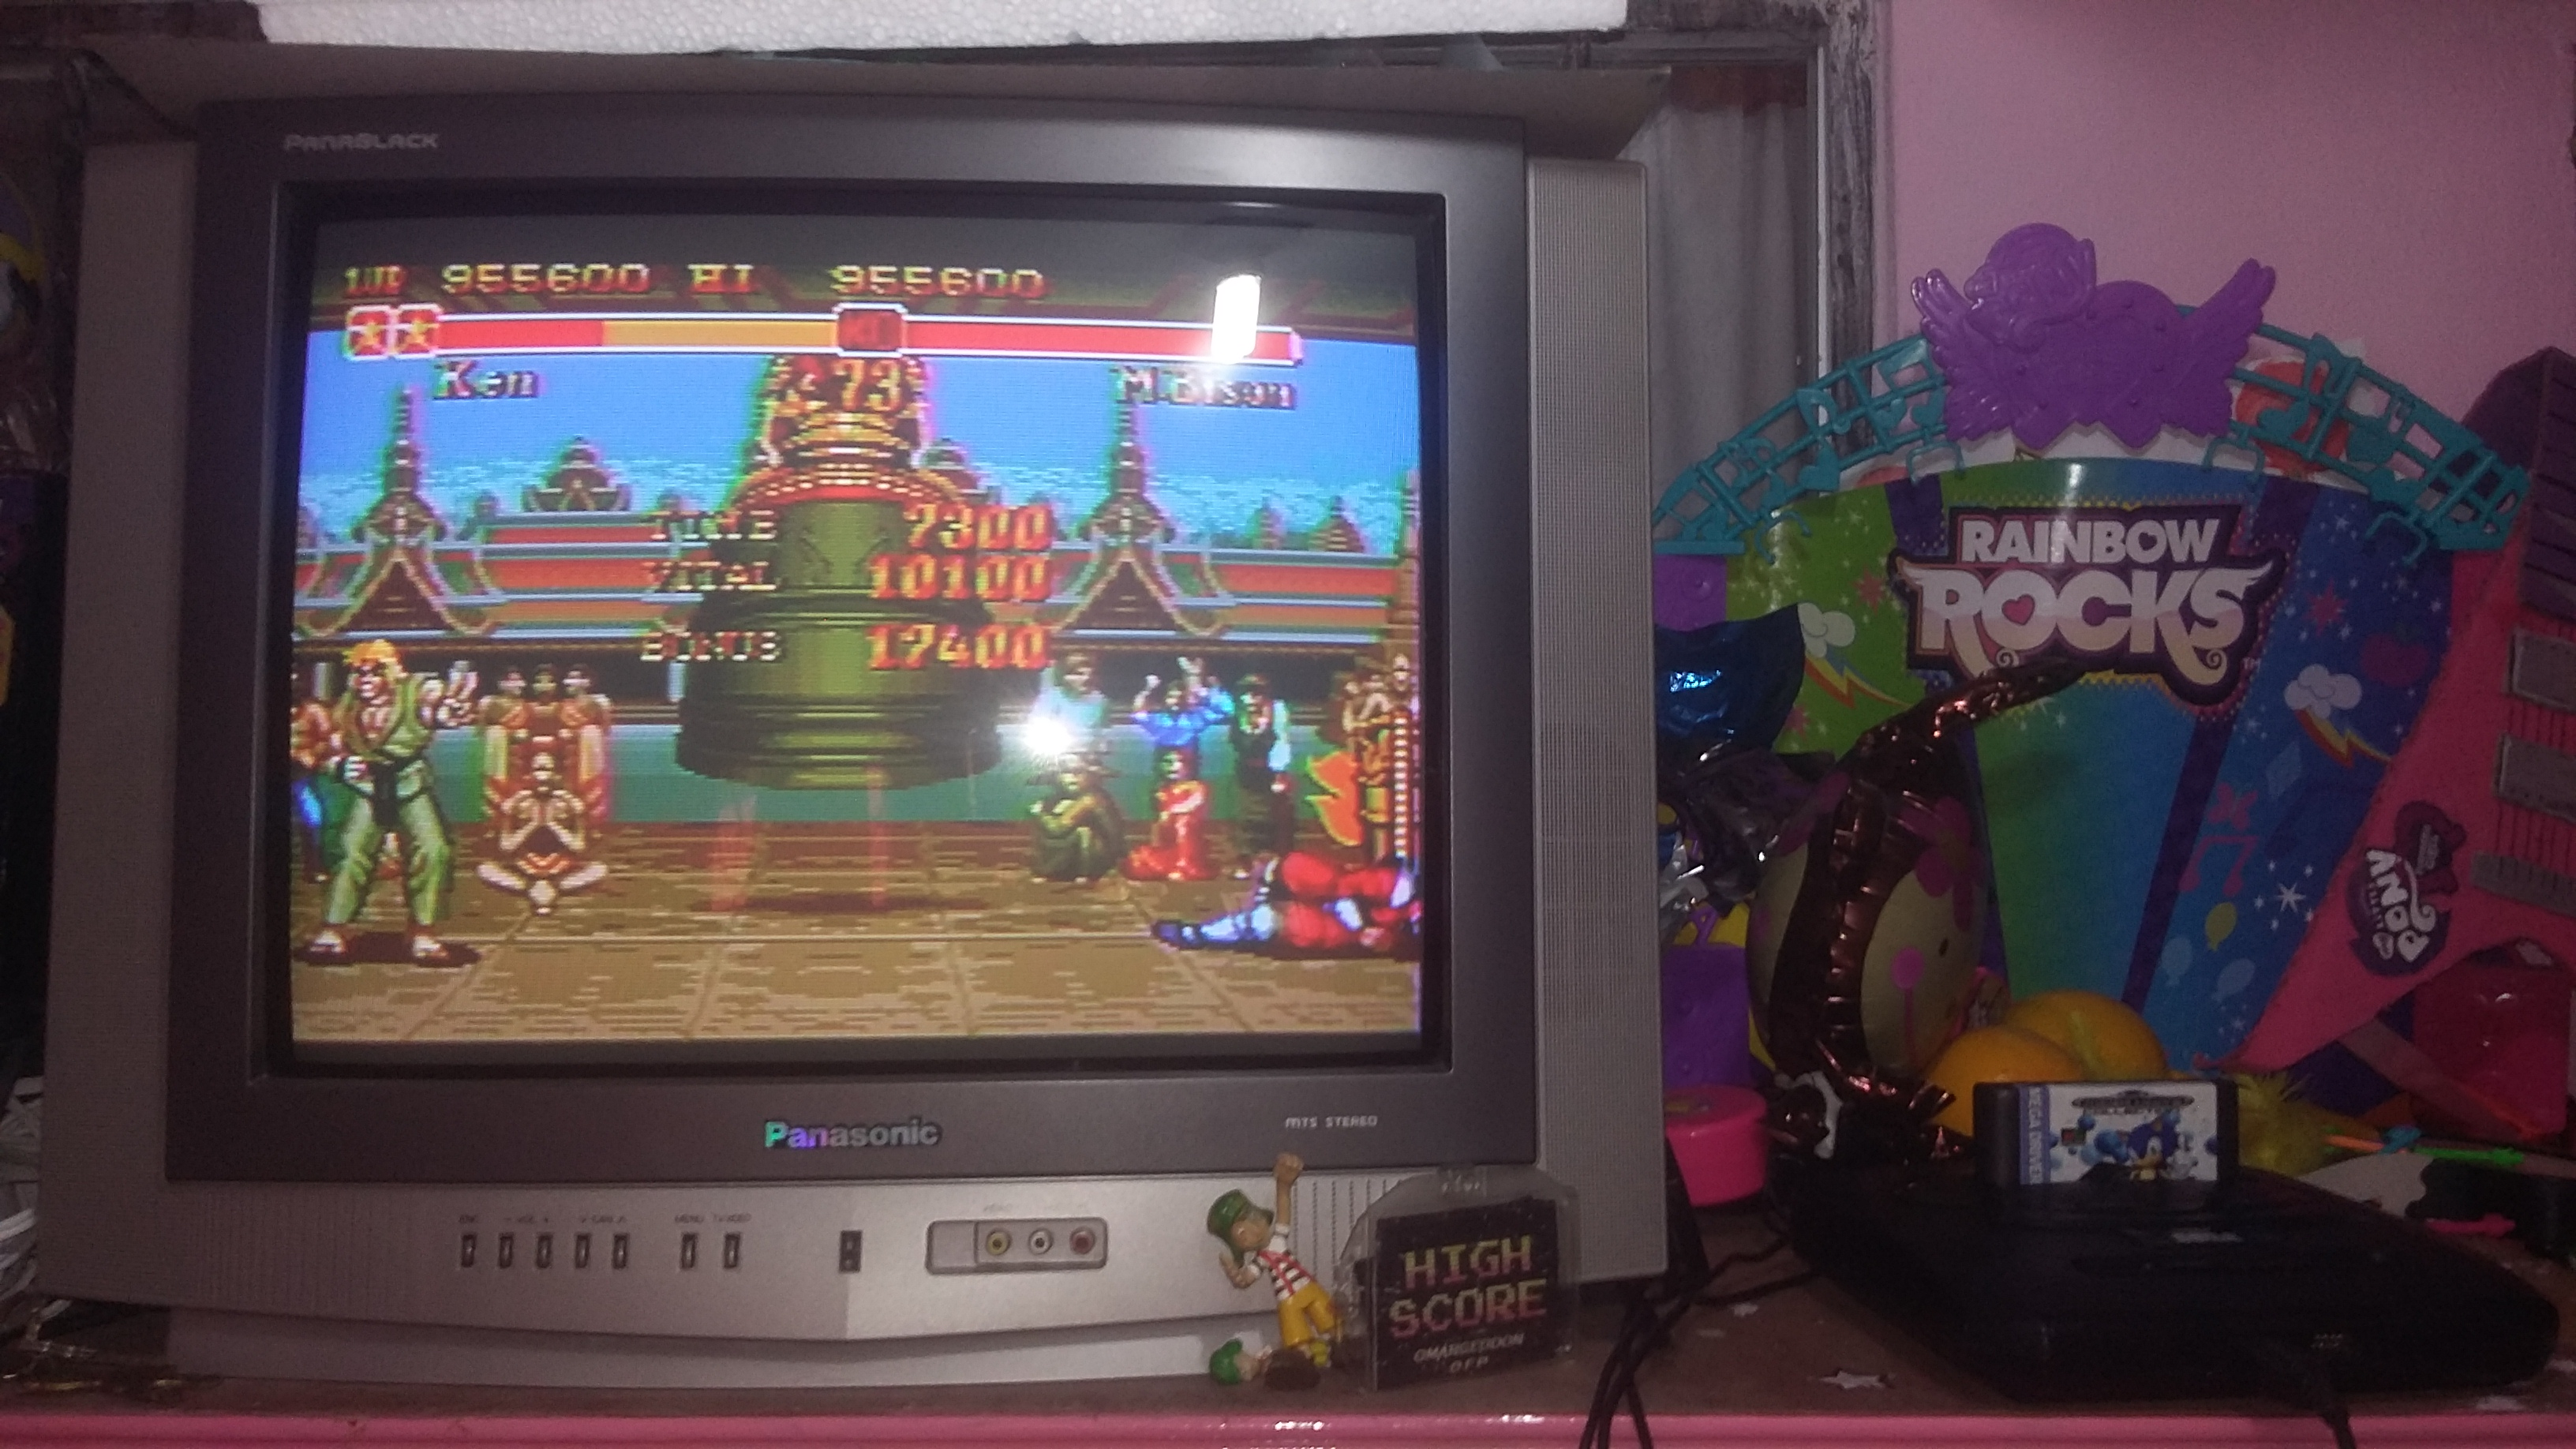 omargeddon: Super Street Fighter II: The New Challengers [Super mode] (Sega Genesis / MegaDrive) 955,600 points on 2018-08-11 18:48:05